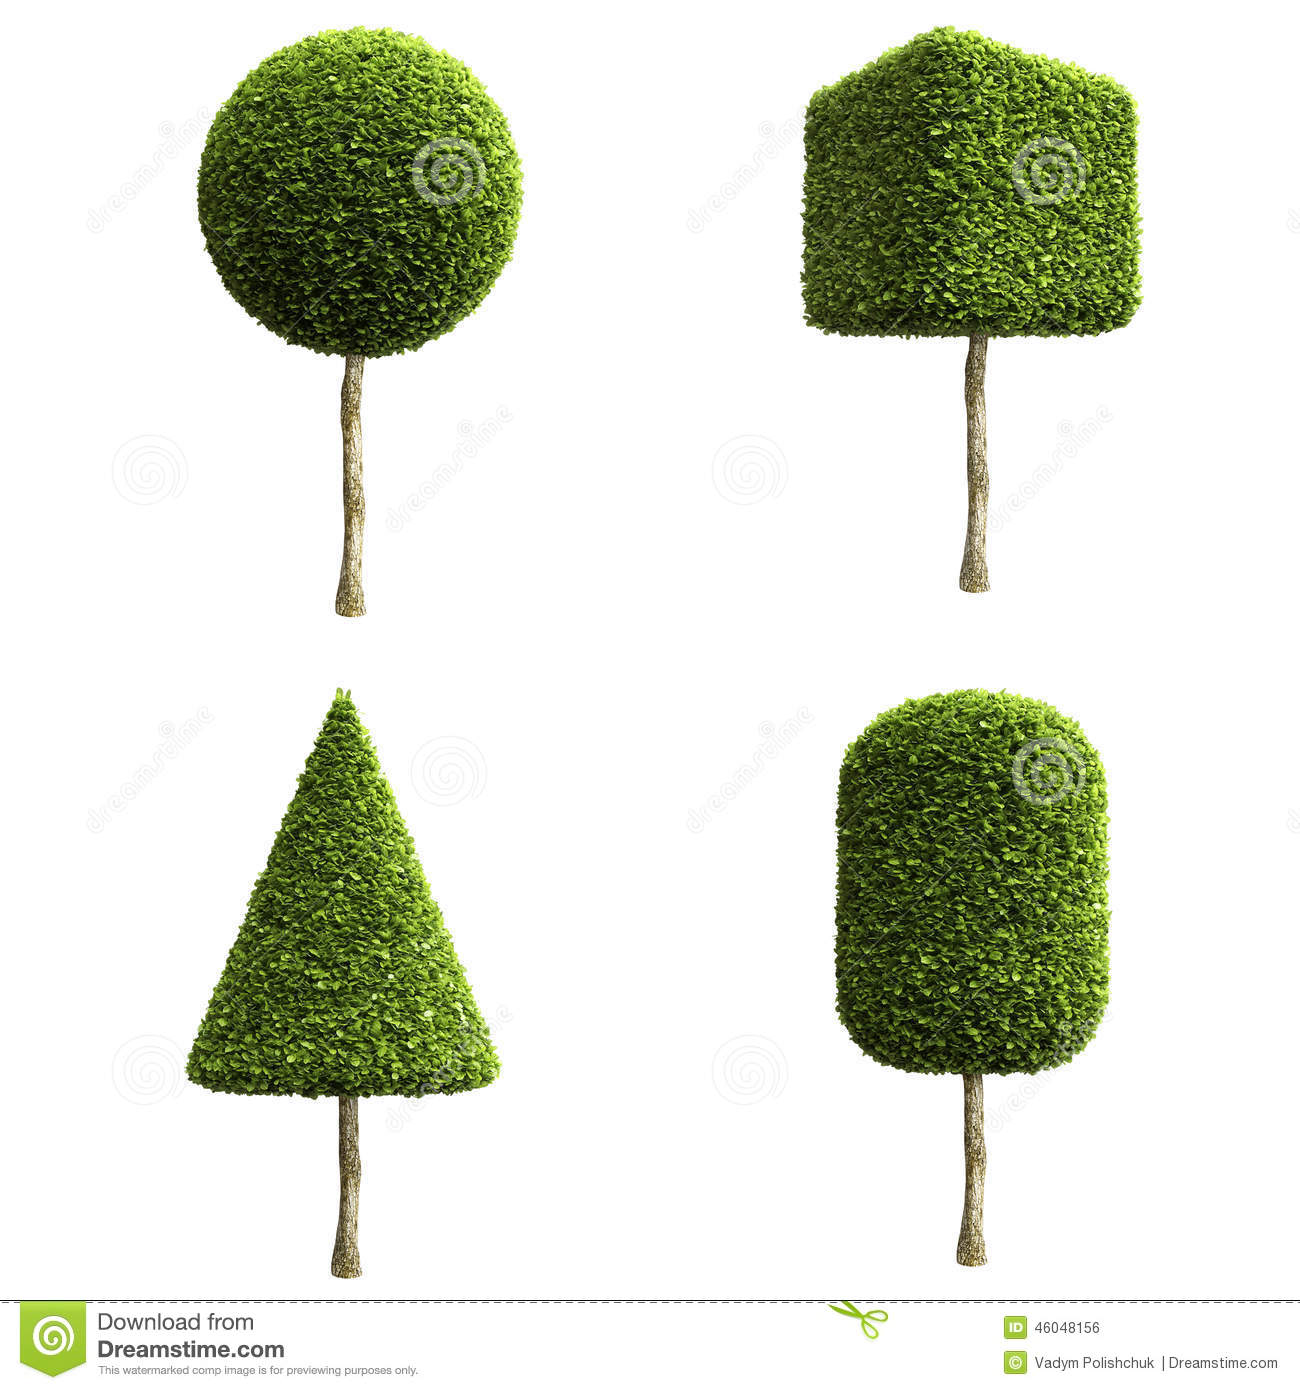 Green Decorative Shrubs Or Trees Stock Illustration Image 46048156